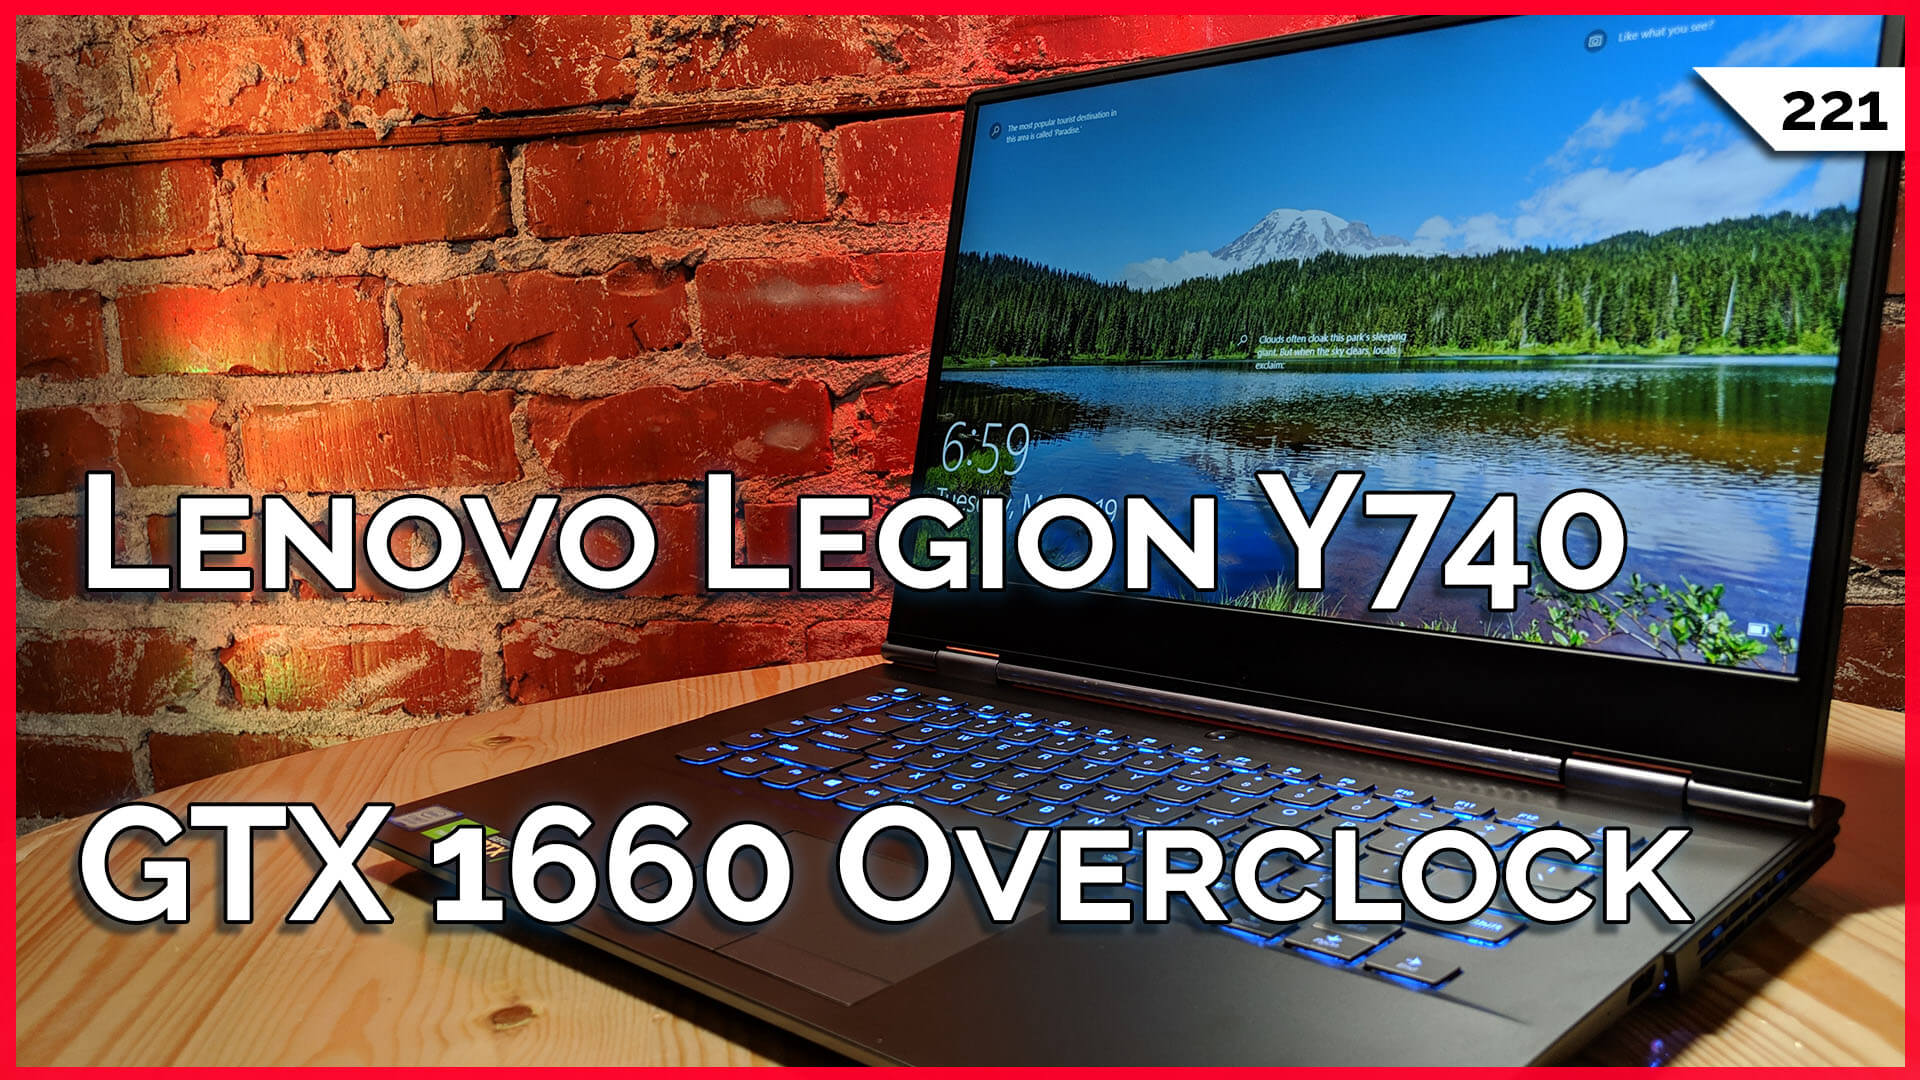 GTX 1660 Overclock! Lenovo Legion Y740 Gaming Laptop Review, Computer Desk Mods, Google Stadia! — TekThing 221